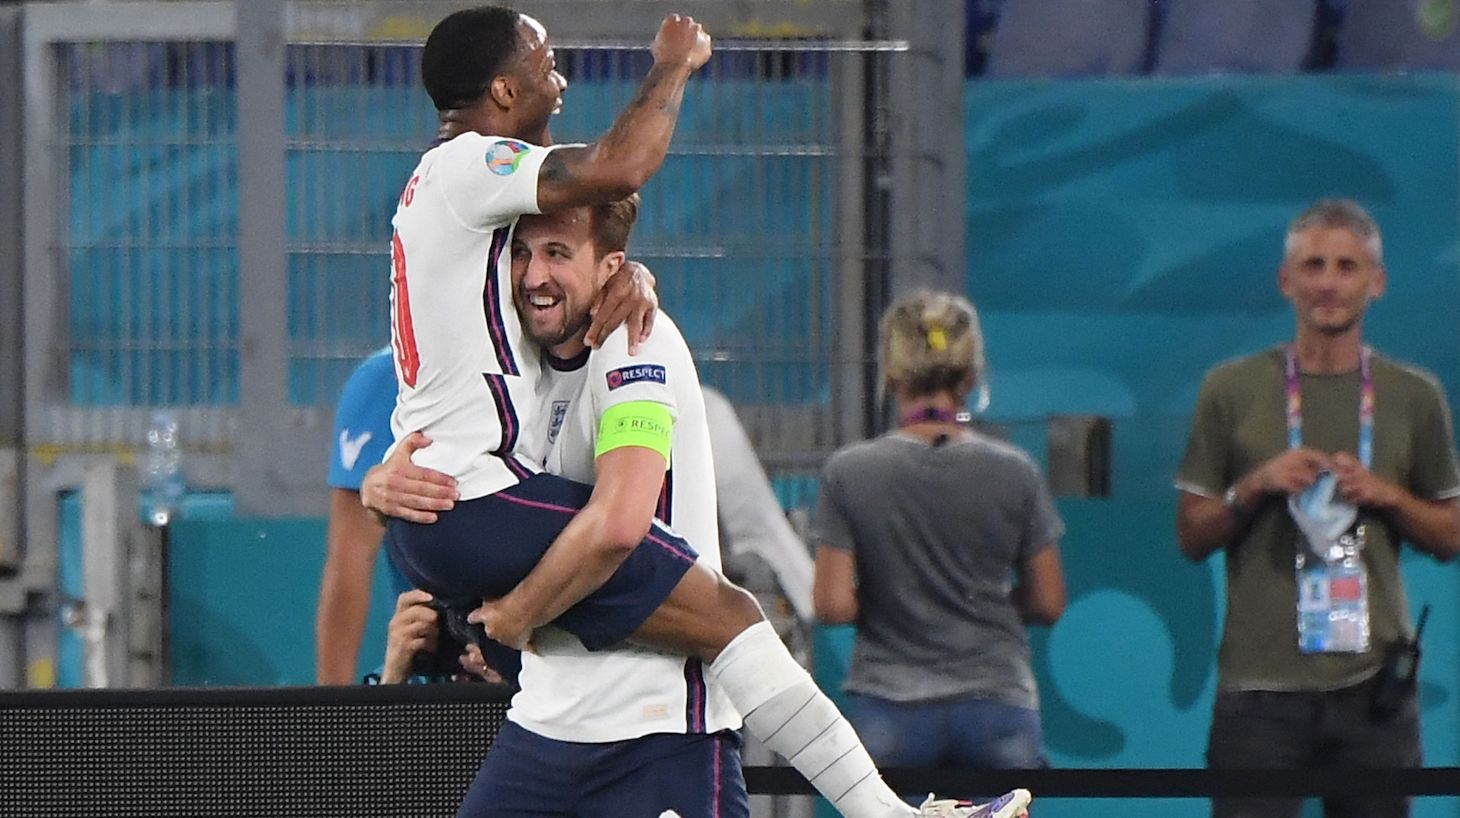 England's forward Harry Kane celebrates with England's forward Raheem Sterling (L) after scoring third goal during the UEFA EURO 2020 quarter-final football match between Ukraine and England at the Olympic Stadium in Rome on July 3, 2021.